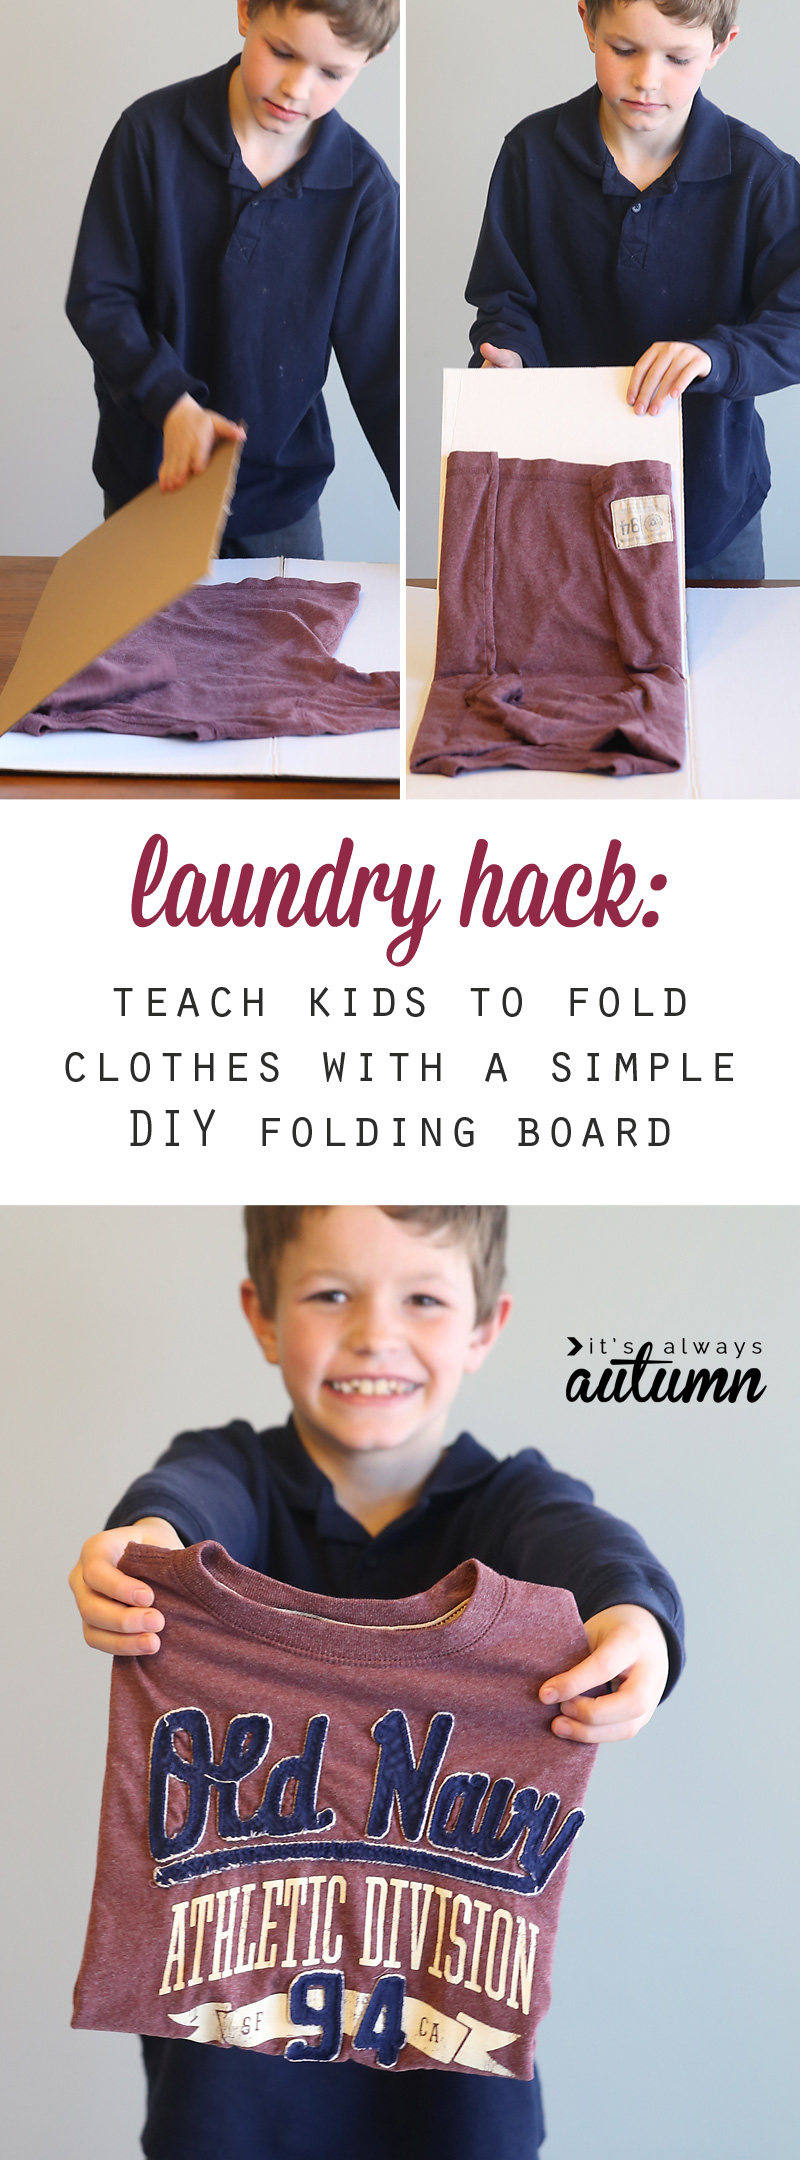 GENIUS! This simple cardboard folding helper makes it easy for kids fold their own clothes - what a great way to teach them to clean up. Click through to see how to make this laundry hack for $1.